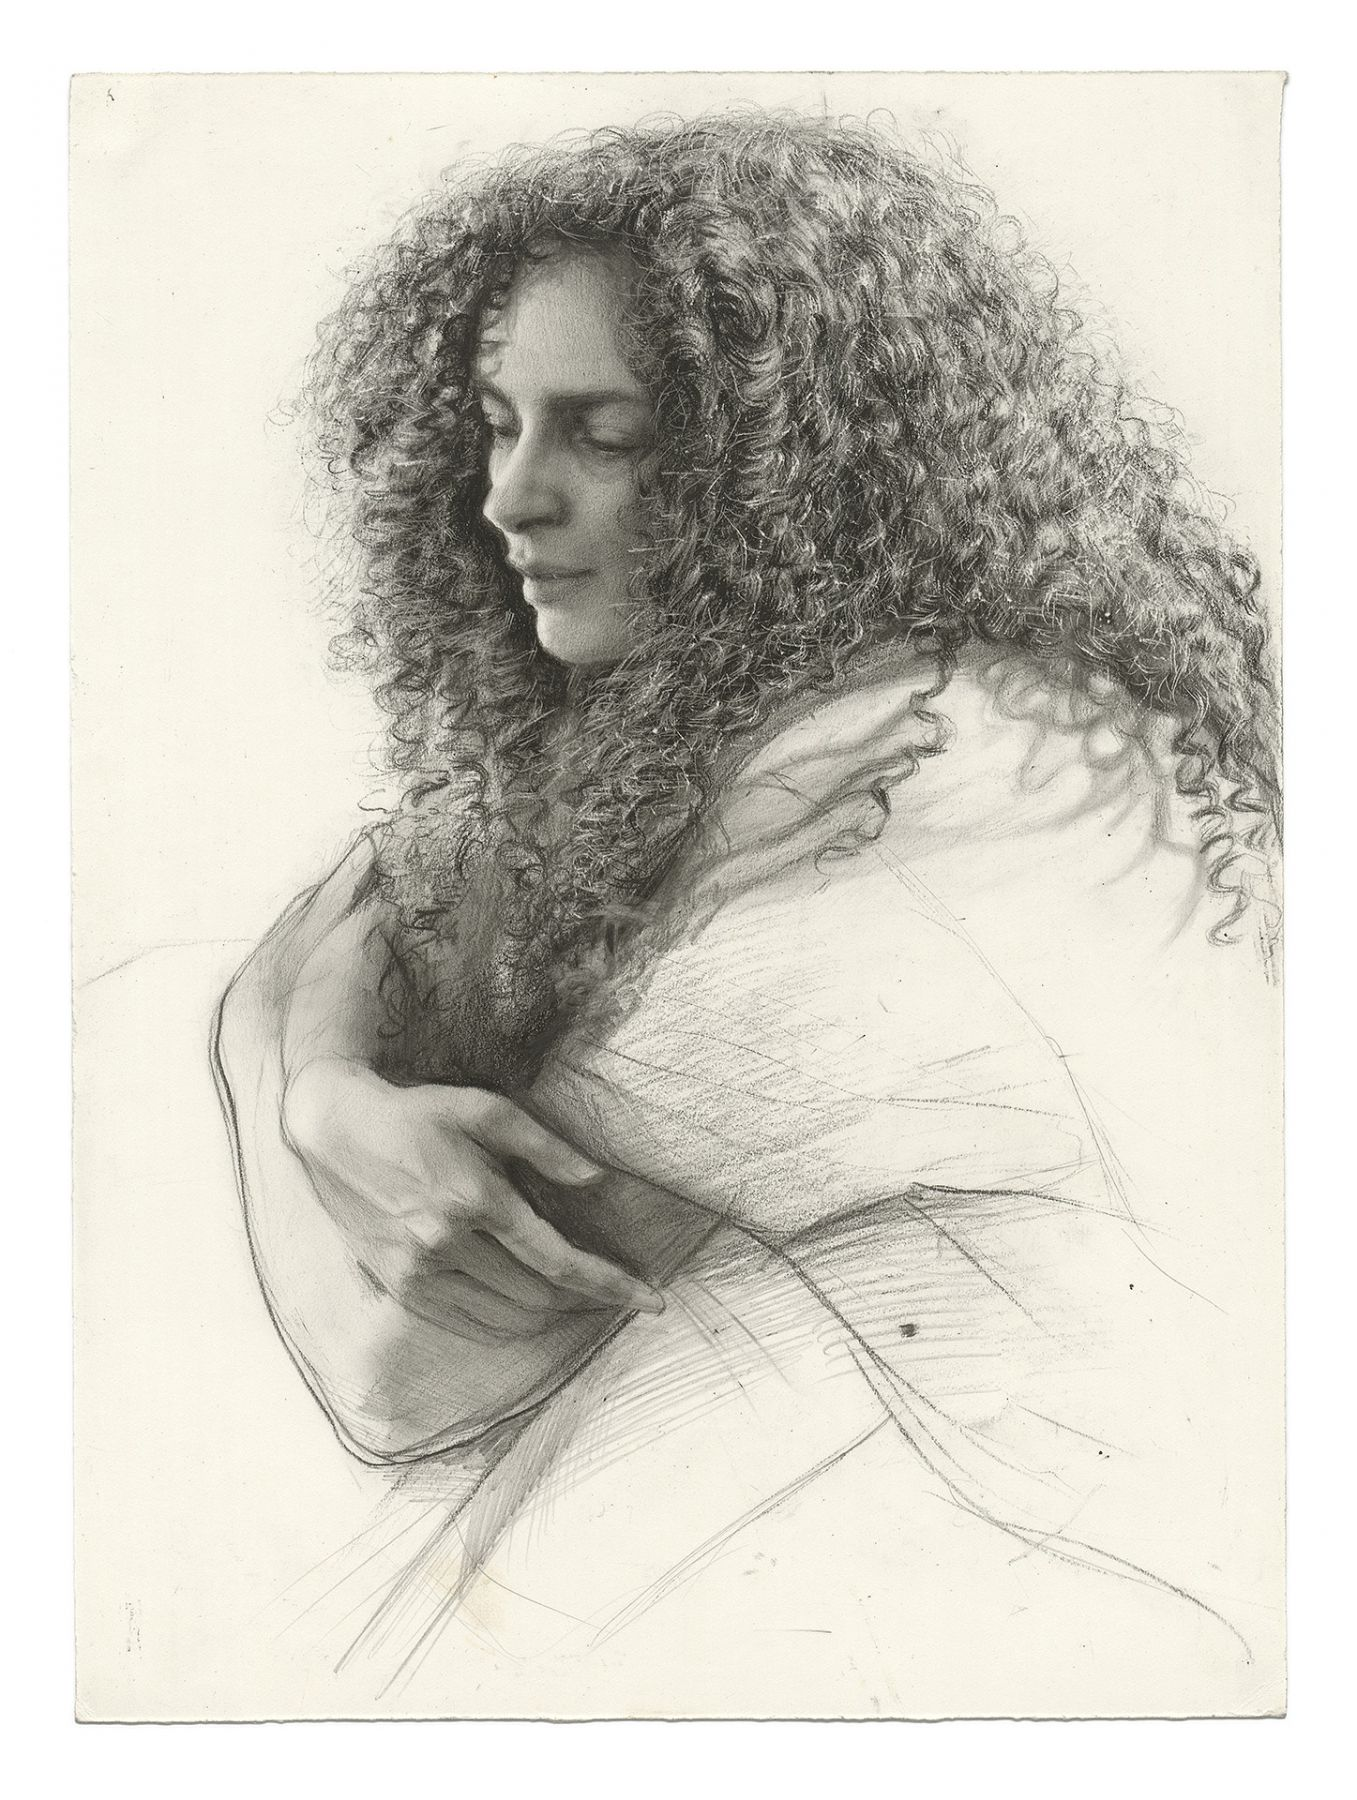 Steven Assael, Ava (SOLD), 2008, graphite on paper, 13 1/2 x 10 inches